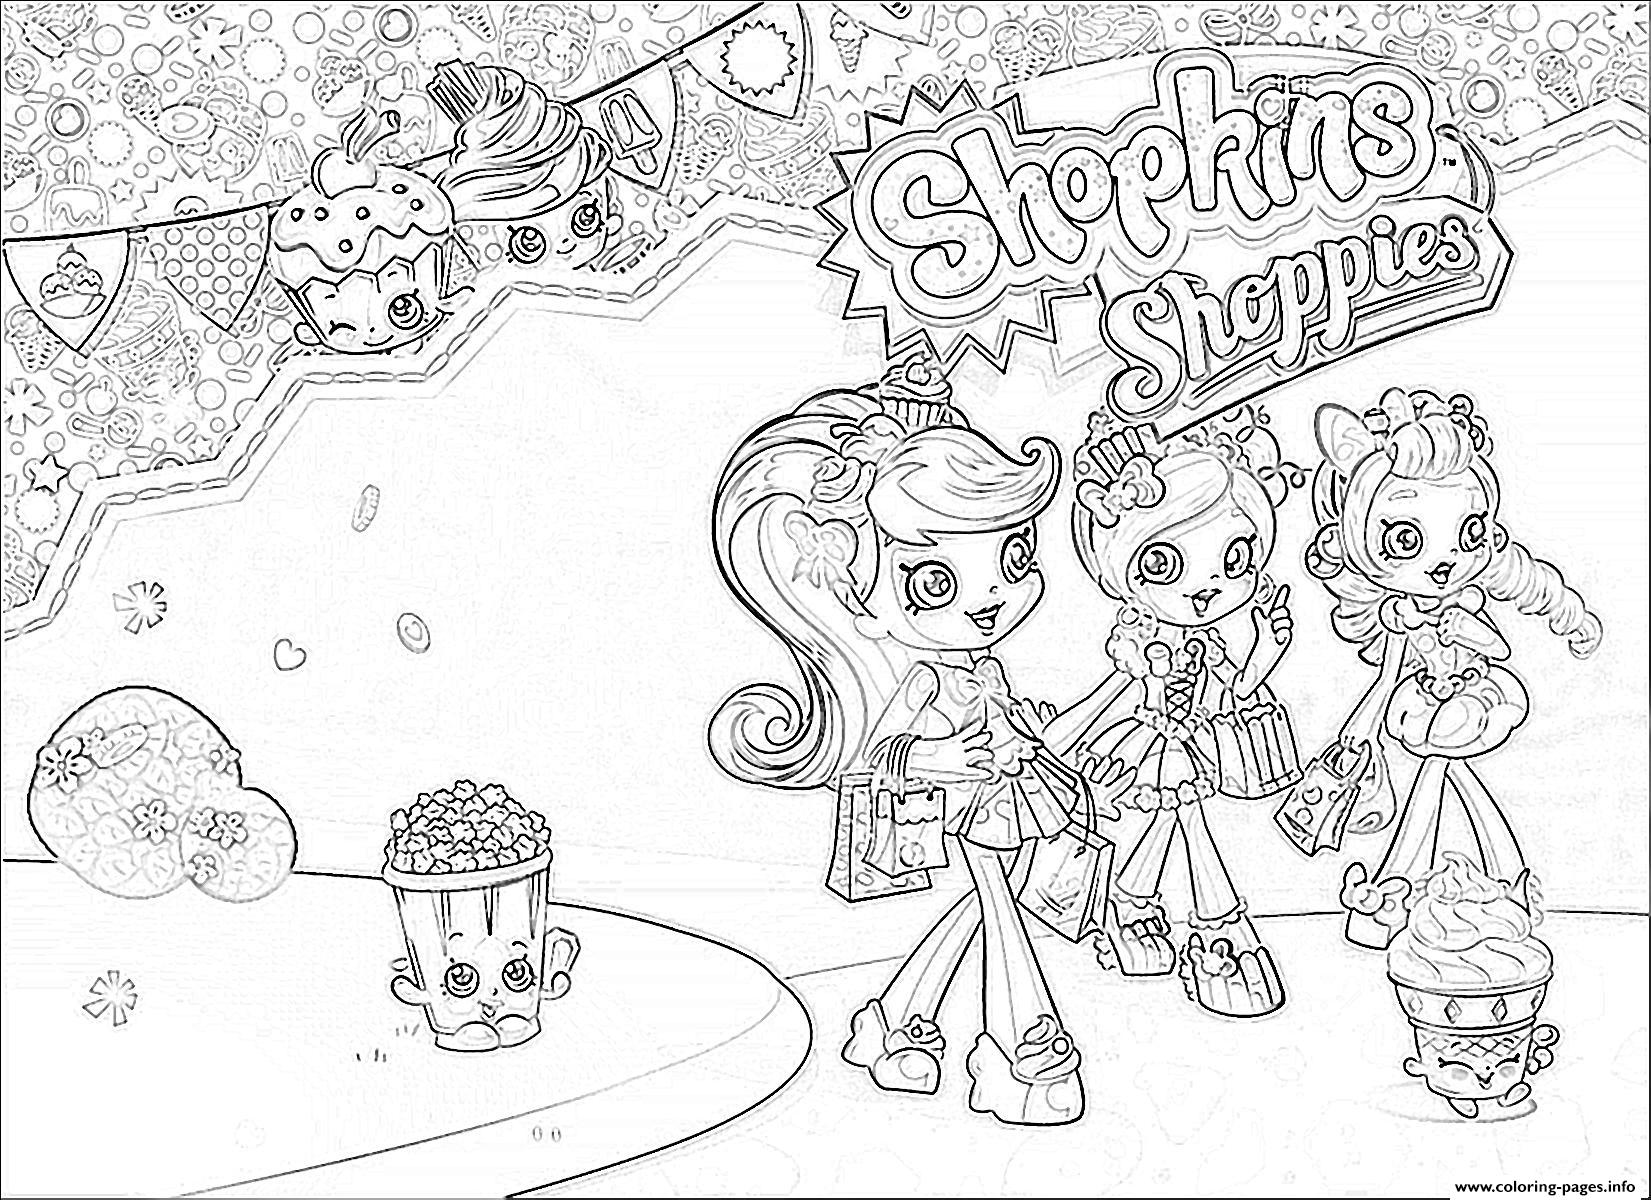 Shopkins Coloring Pages -